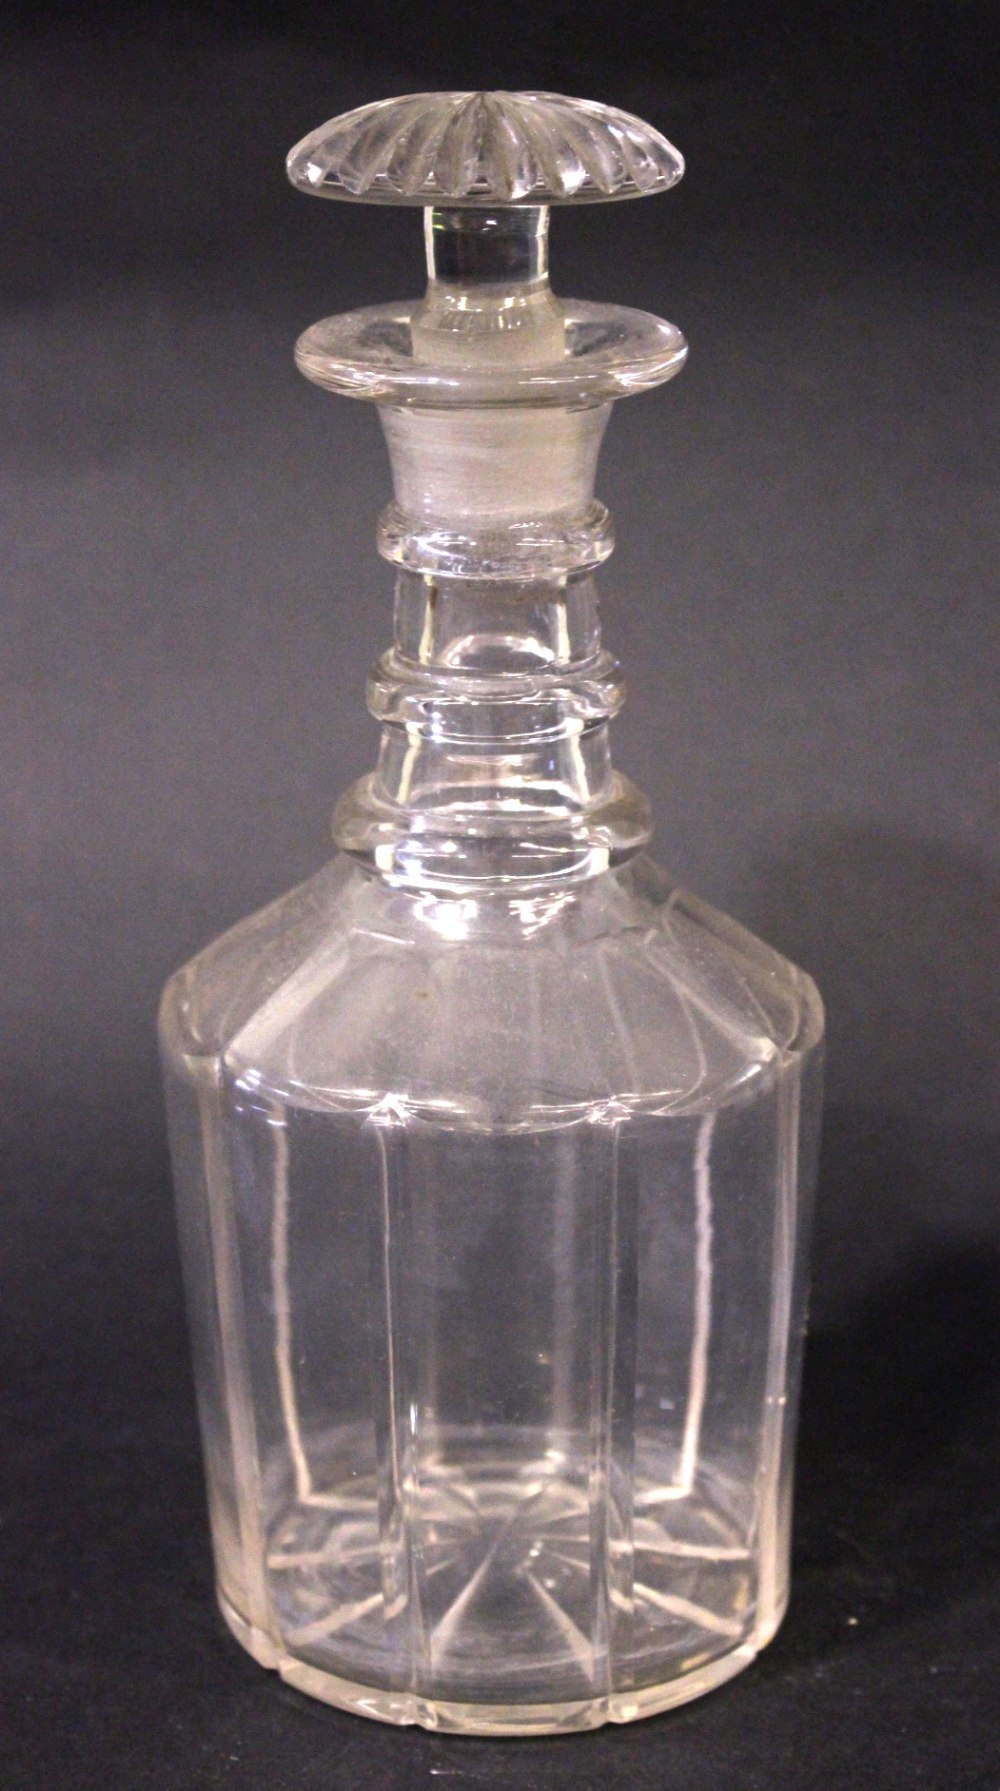 Lot 32 - AN IRISH, 19TH CENTURY, 3 RING NECK DECANTER, with stopper, starburst base, with wide fluted body